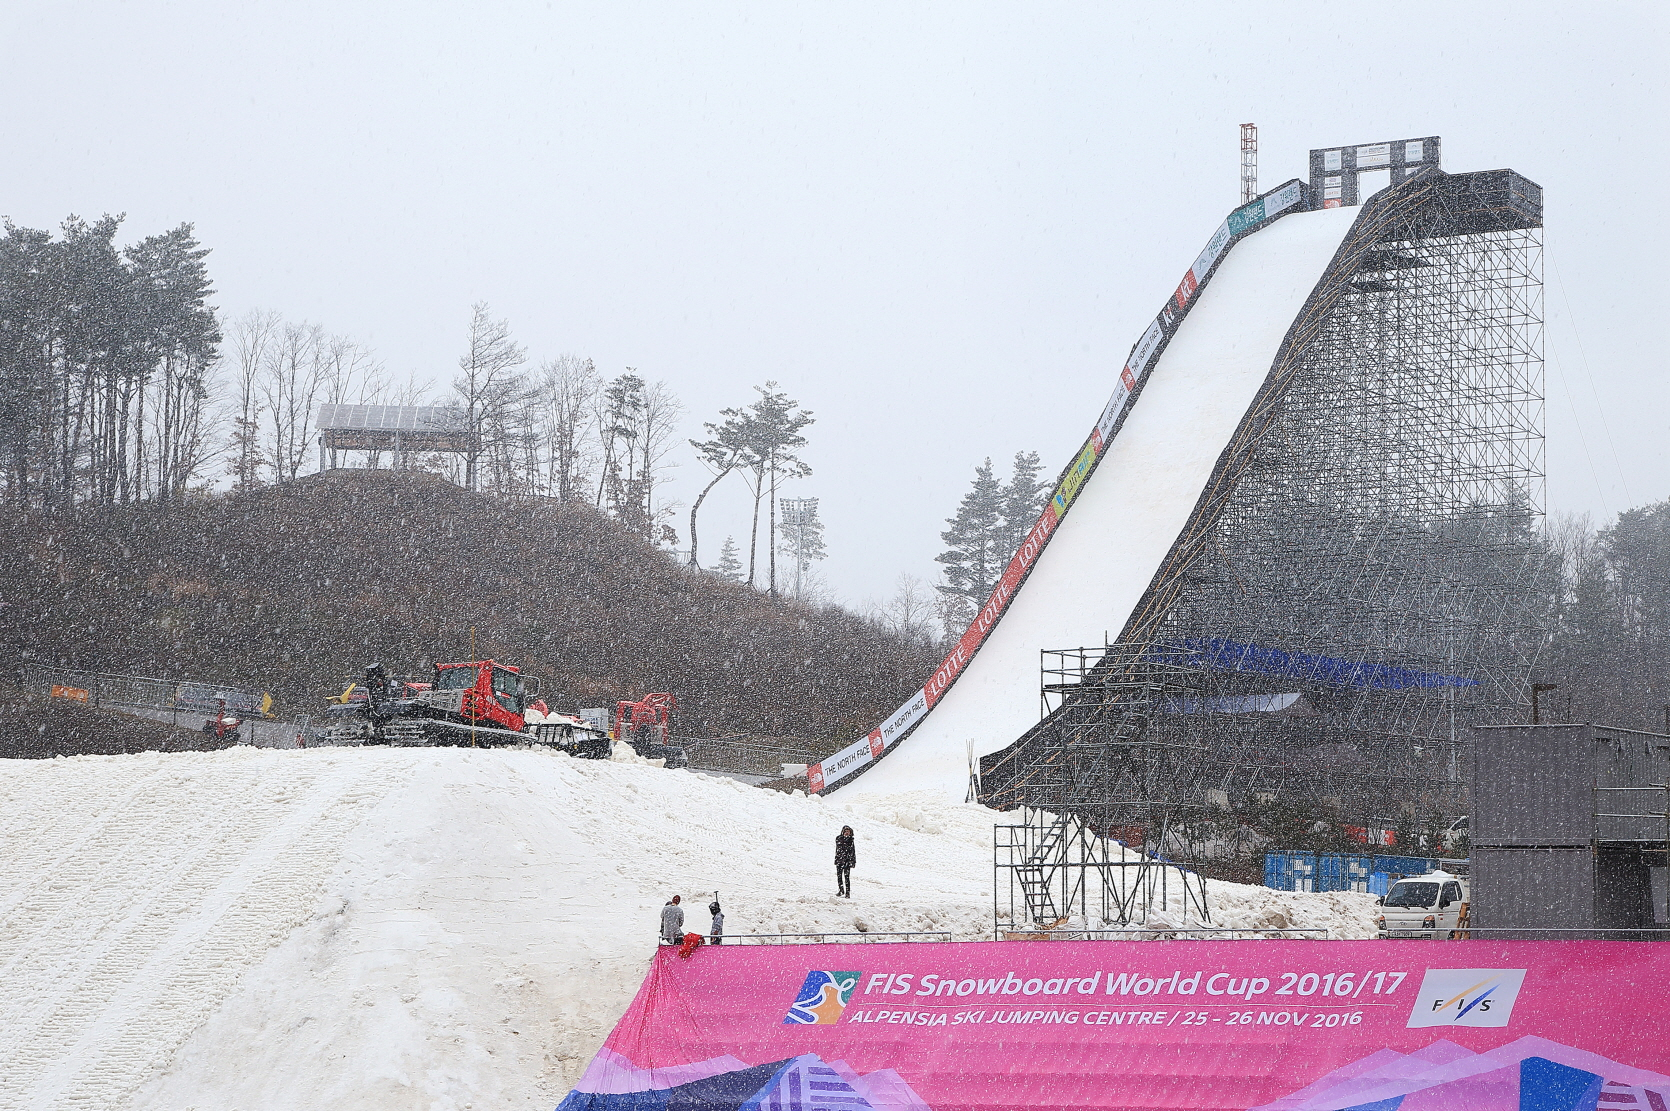 Big Air, a venue of the FIS Snowboard World Cup, is making its debut as an Olympic event in 2018.